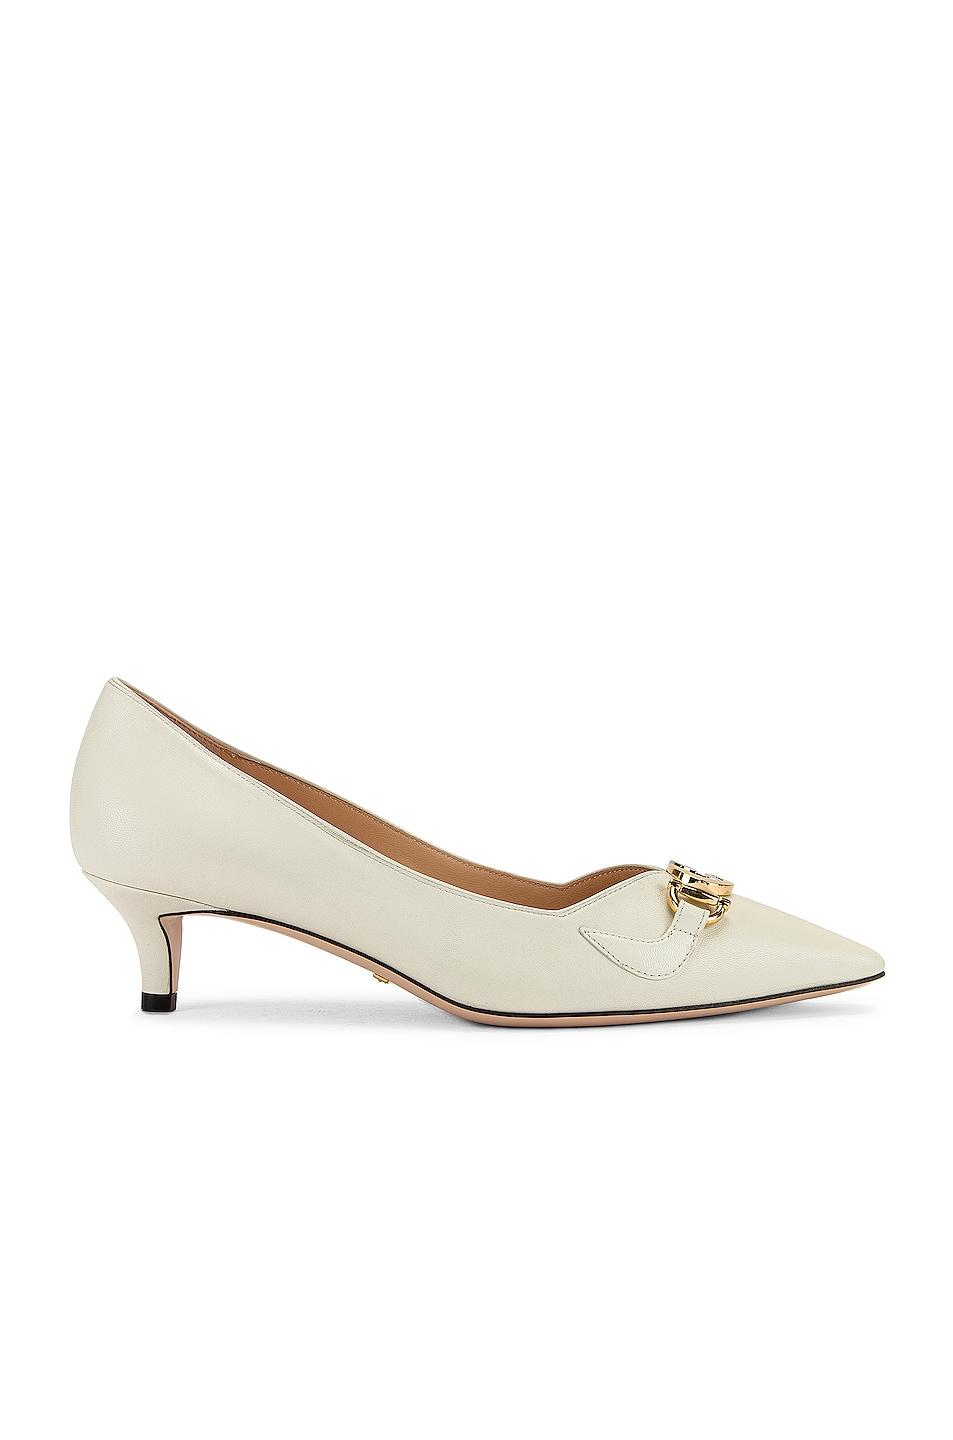 Image 2 of Gucci Low Heel Pumps in Dusty White